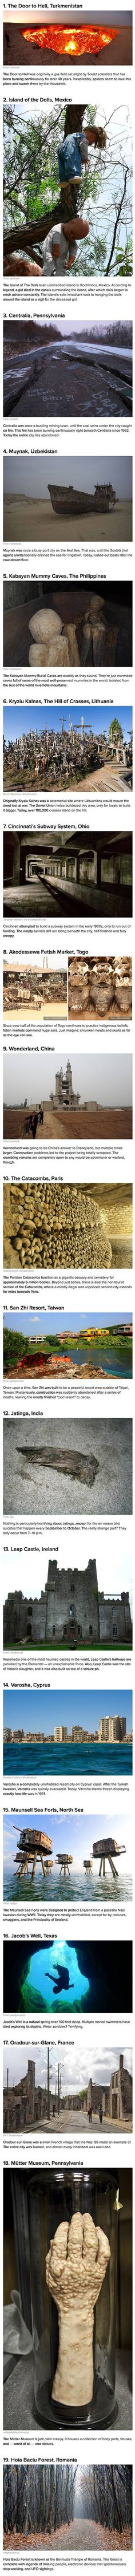 Here are some creepy locations from around the world that actually exist. I want to go to all of these places.